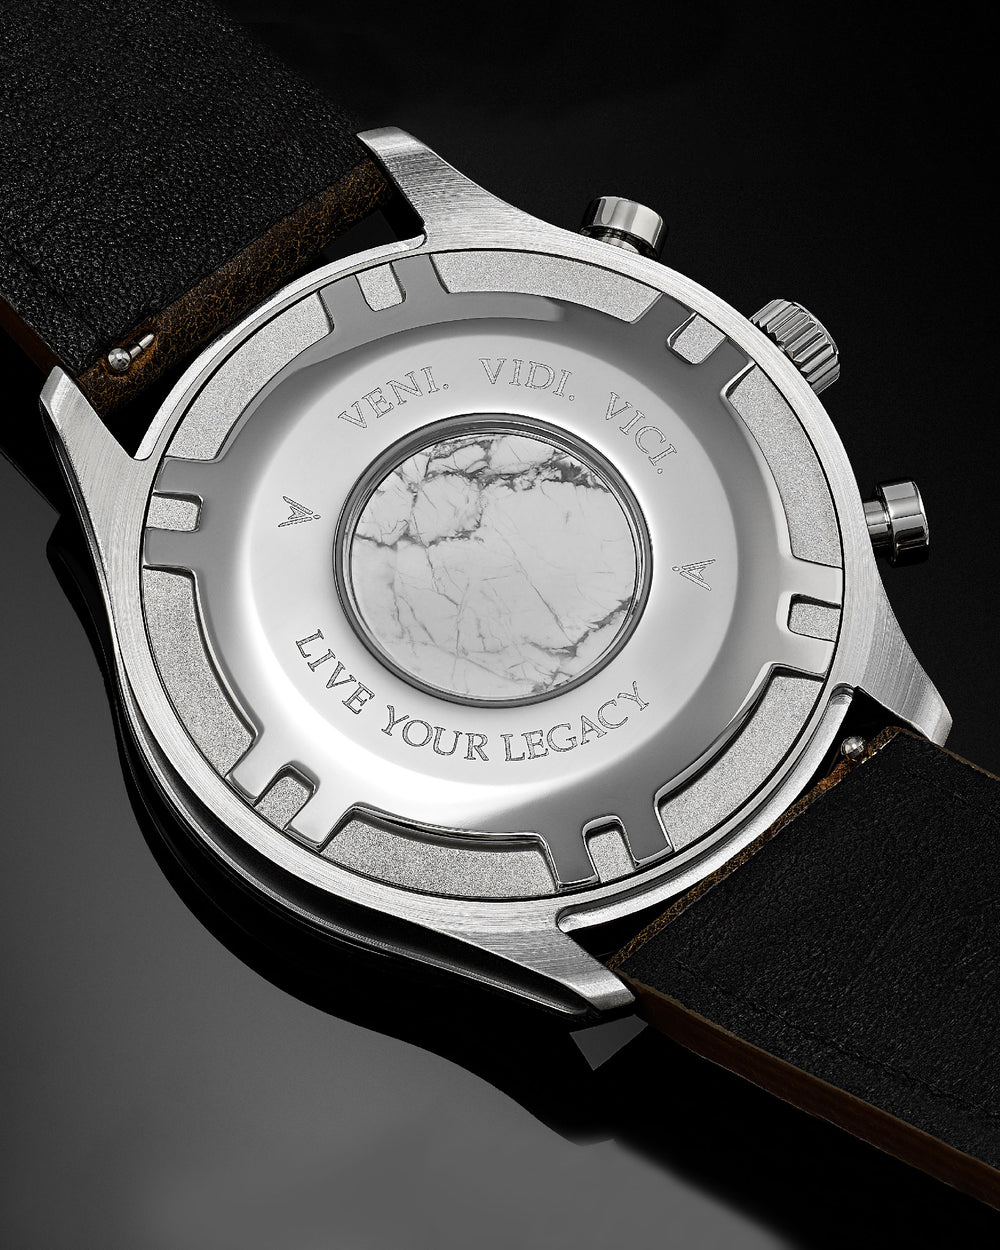 Altitude Italian Marble and 316L Stainless Steel Caseback with Veni Vidi Vici Live Your Legacy Engraving